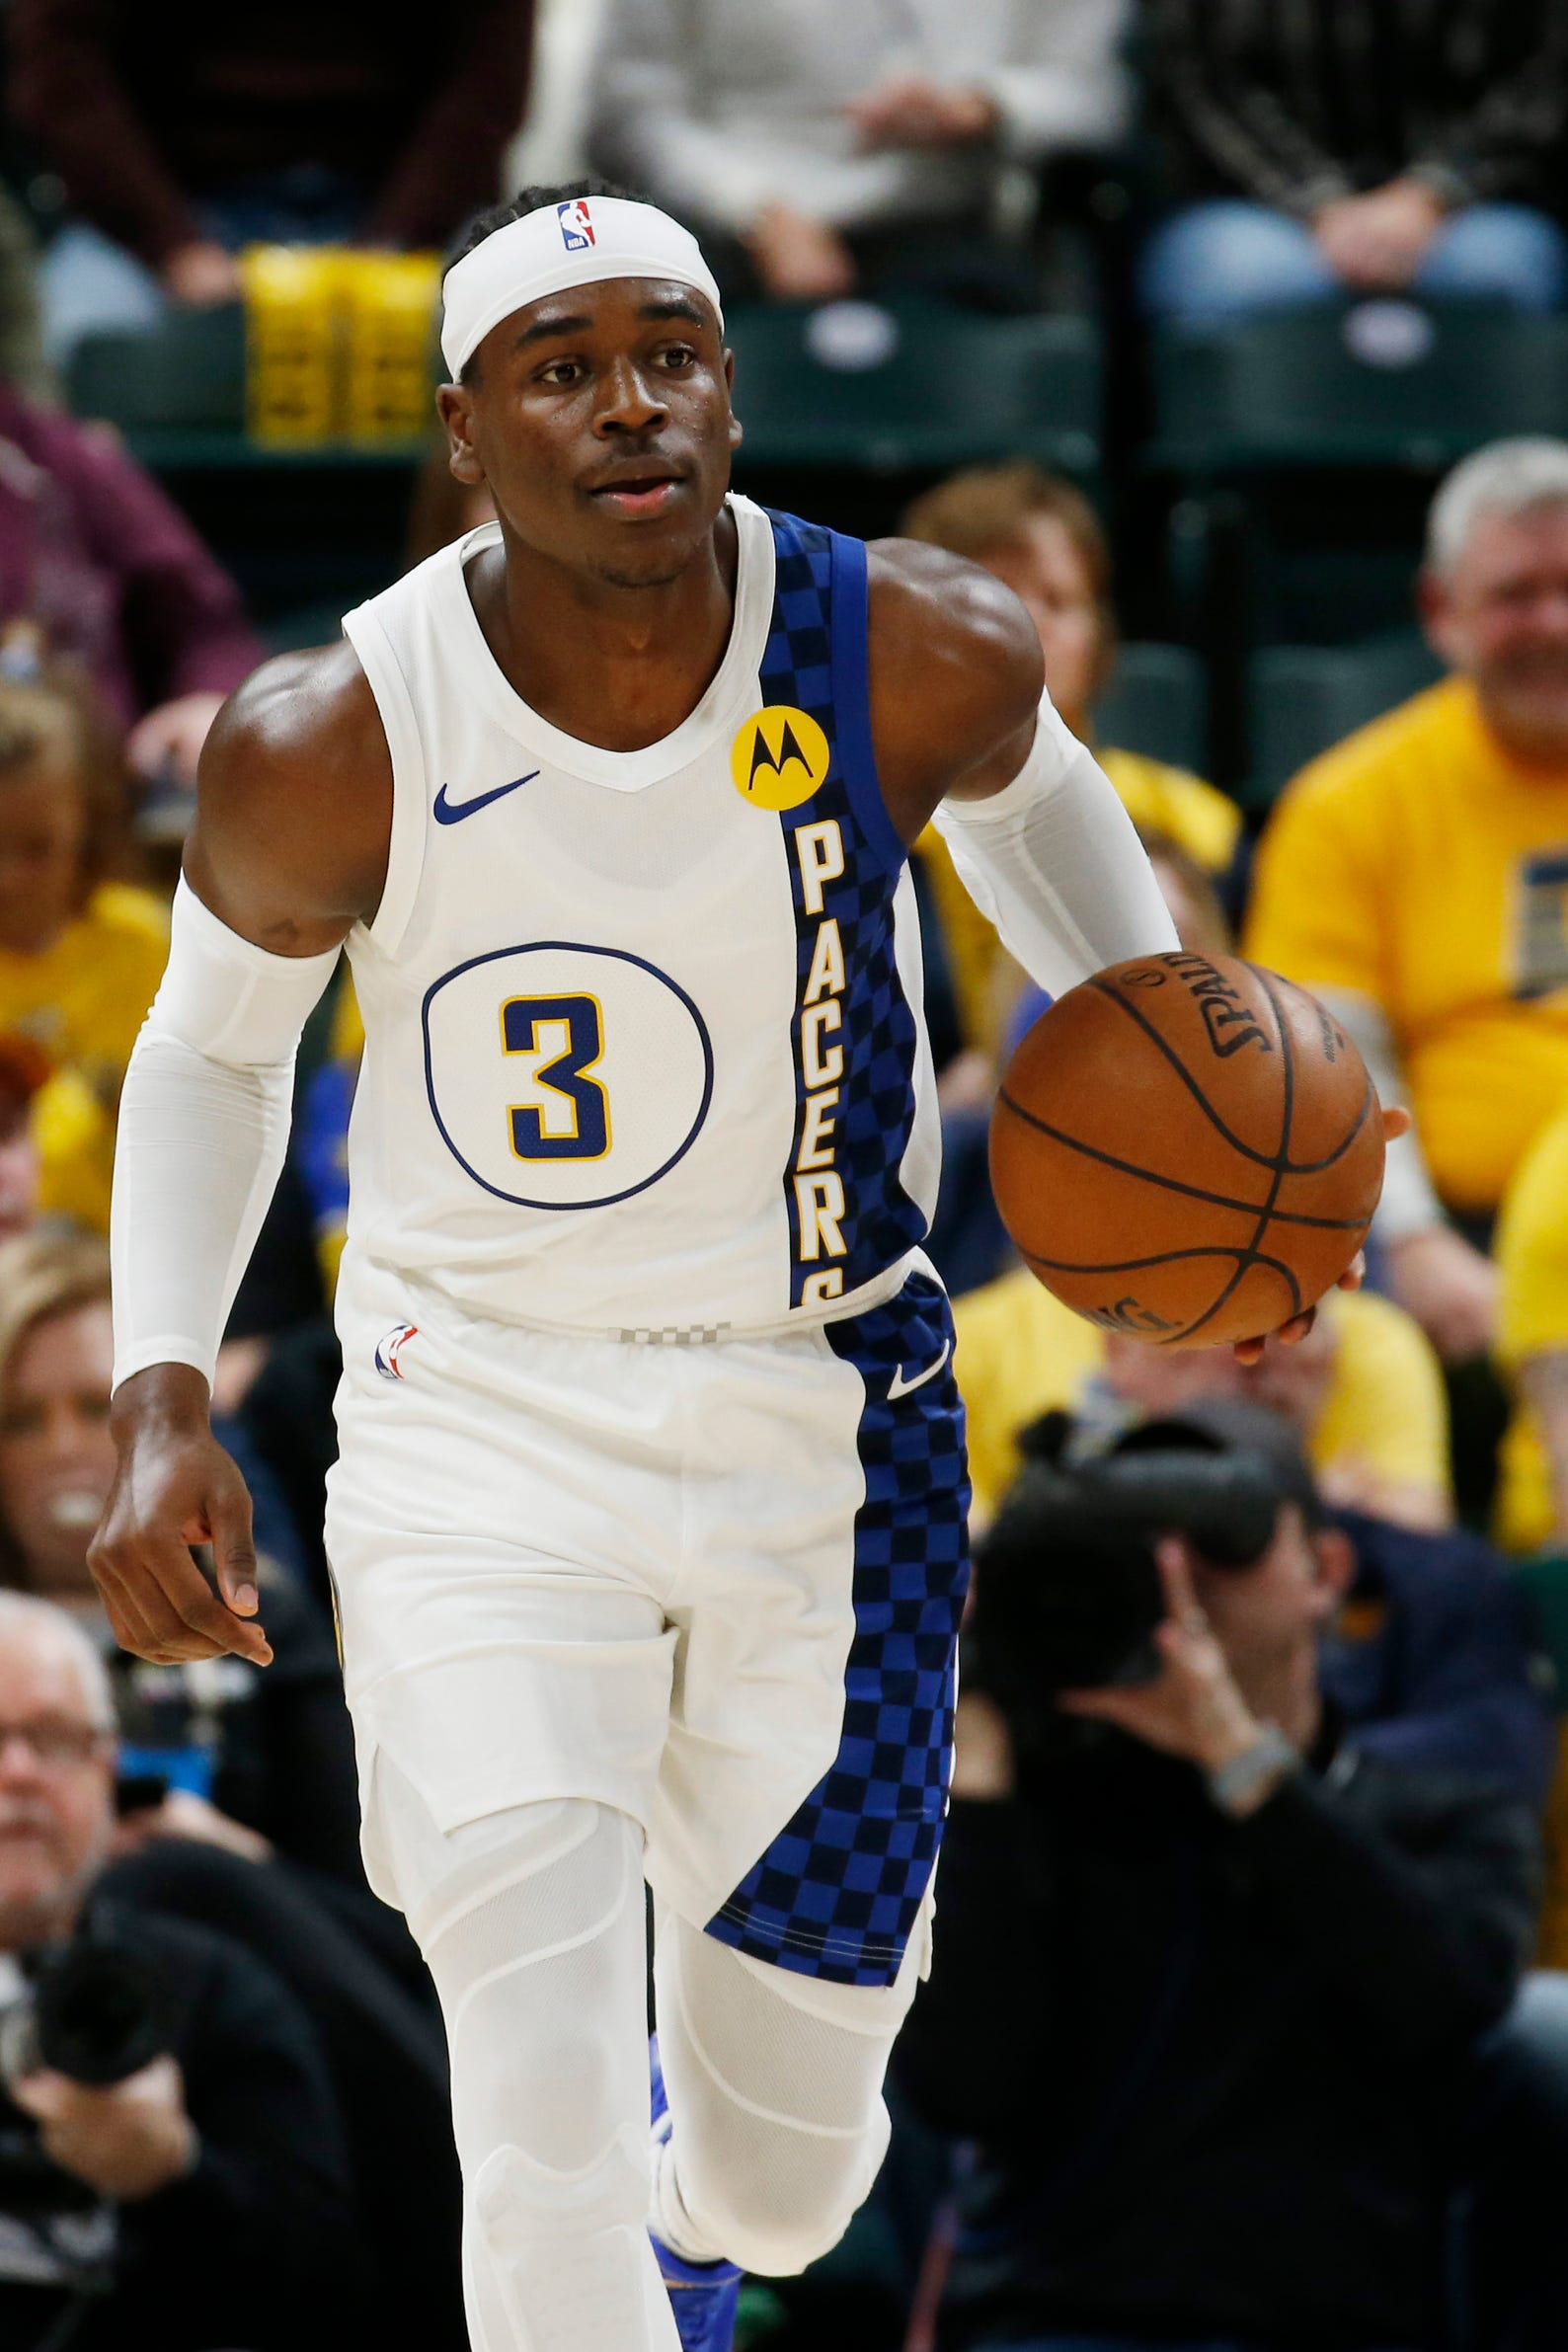 INDIANA PACERS HOST CHARLOTTE HORNETS IN NBA ACTION